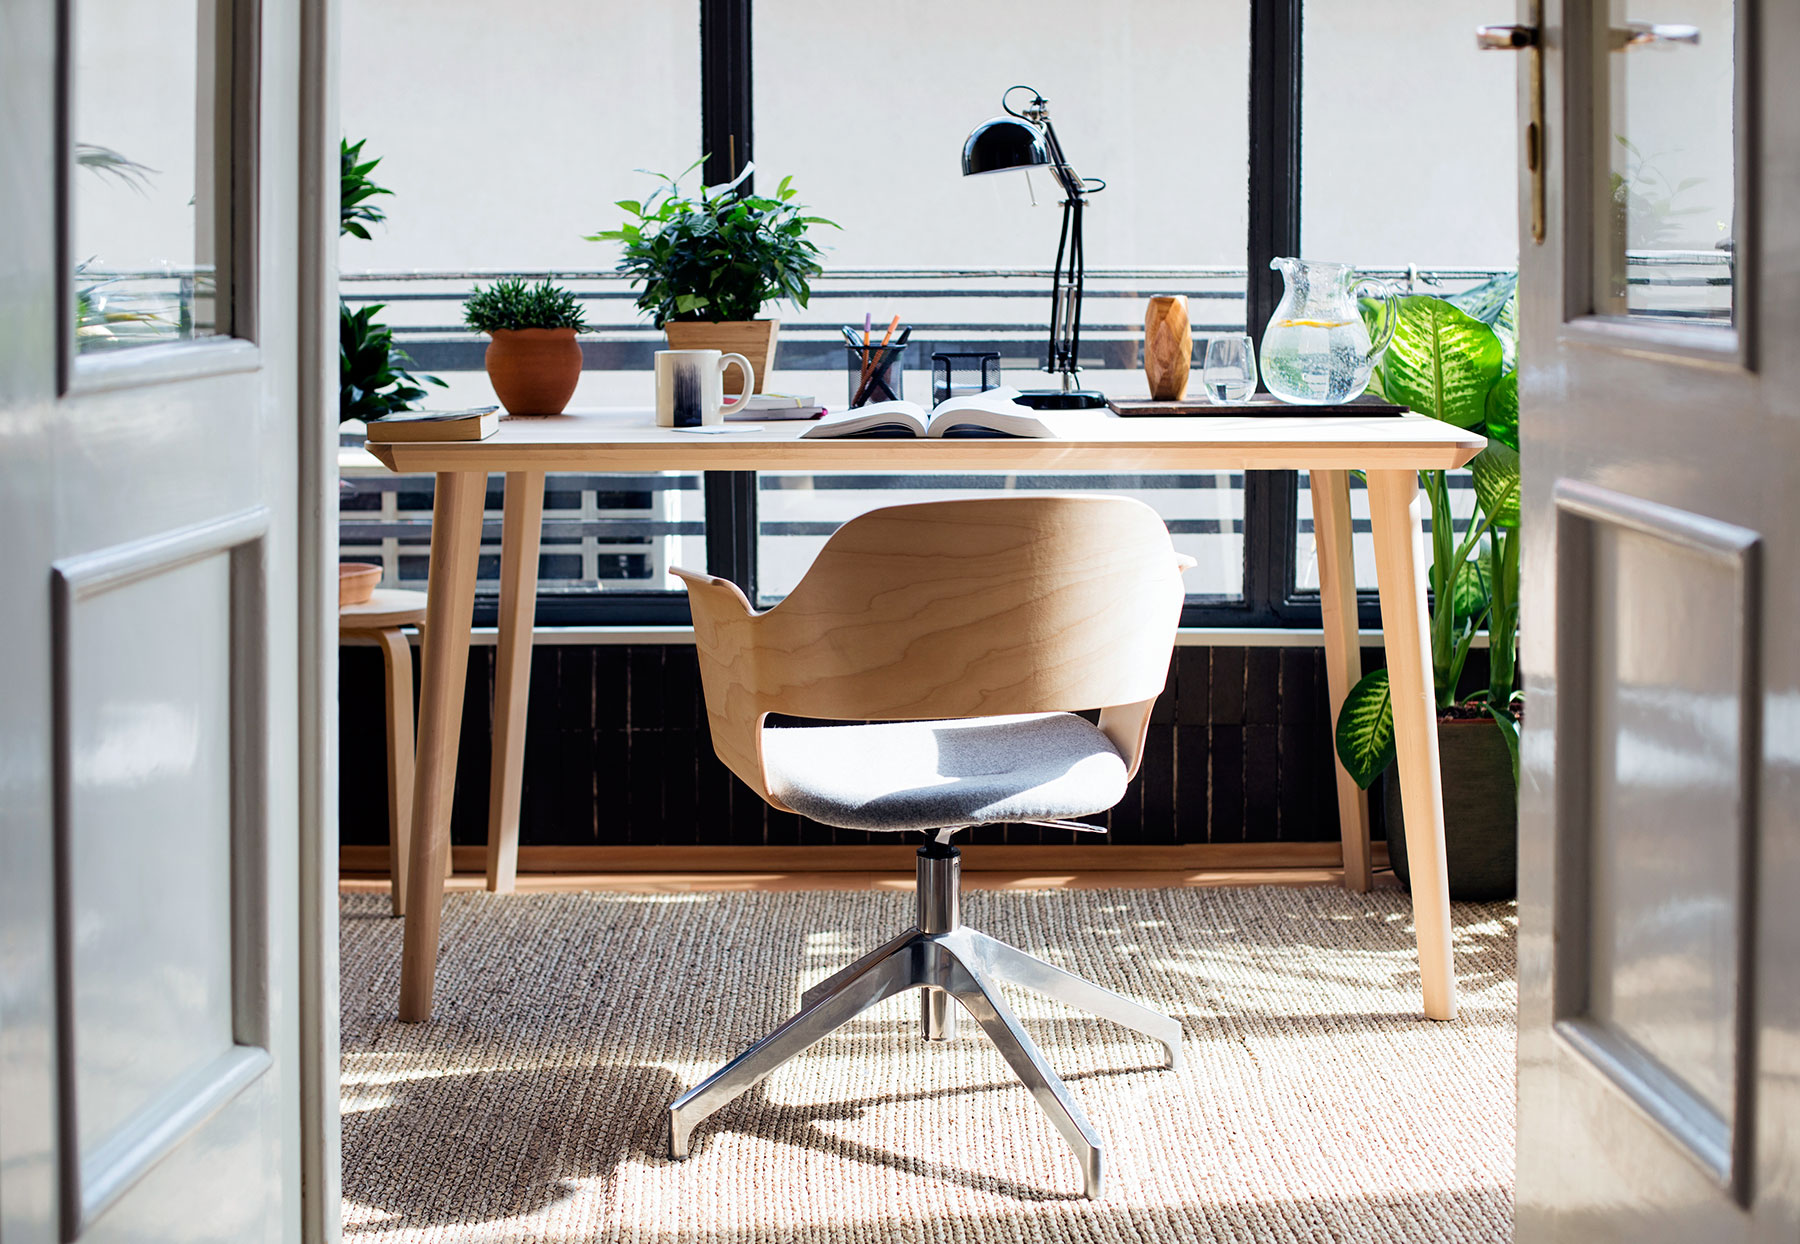 Perfect 10 Home Office Ideas That Will Make You Want To Work All Day | Real Simple